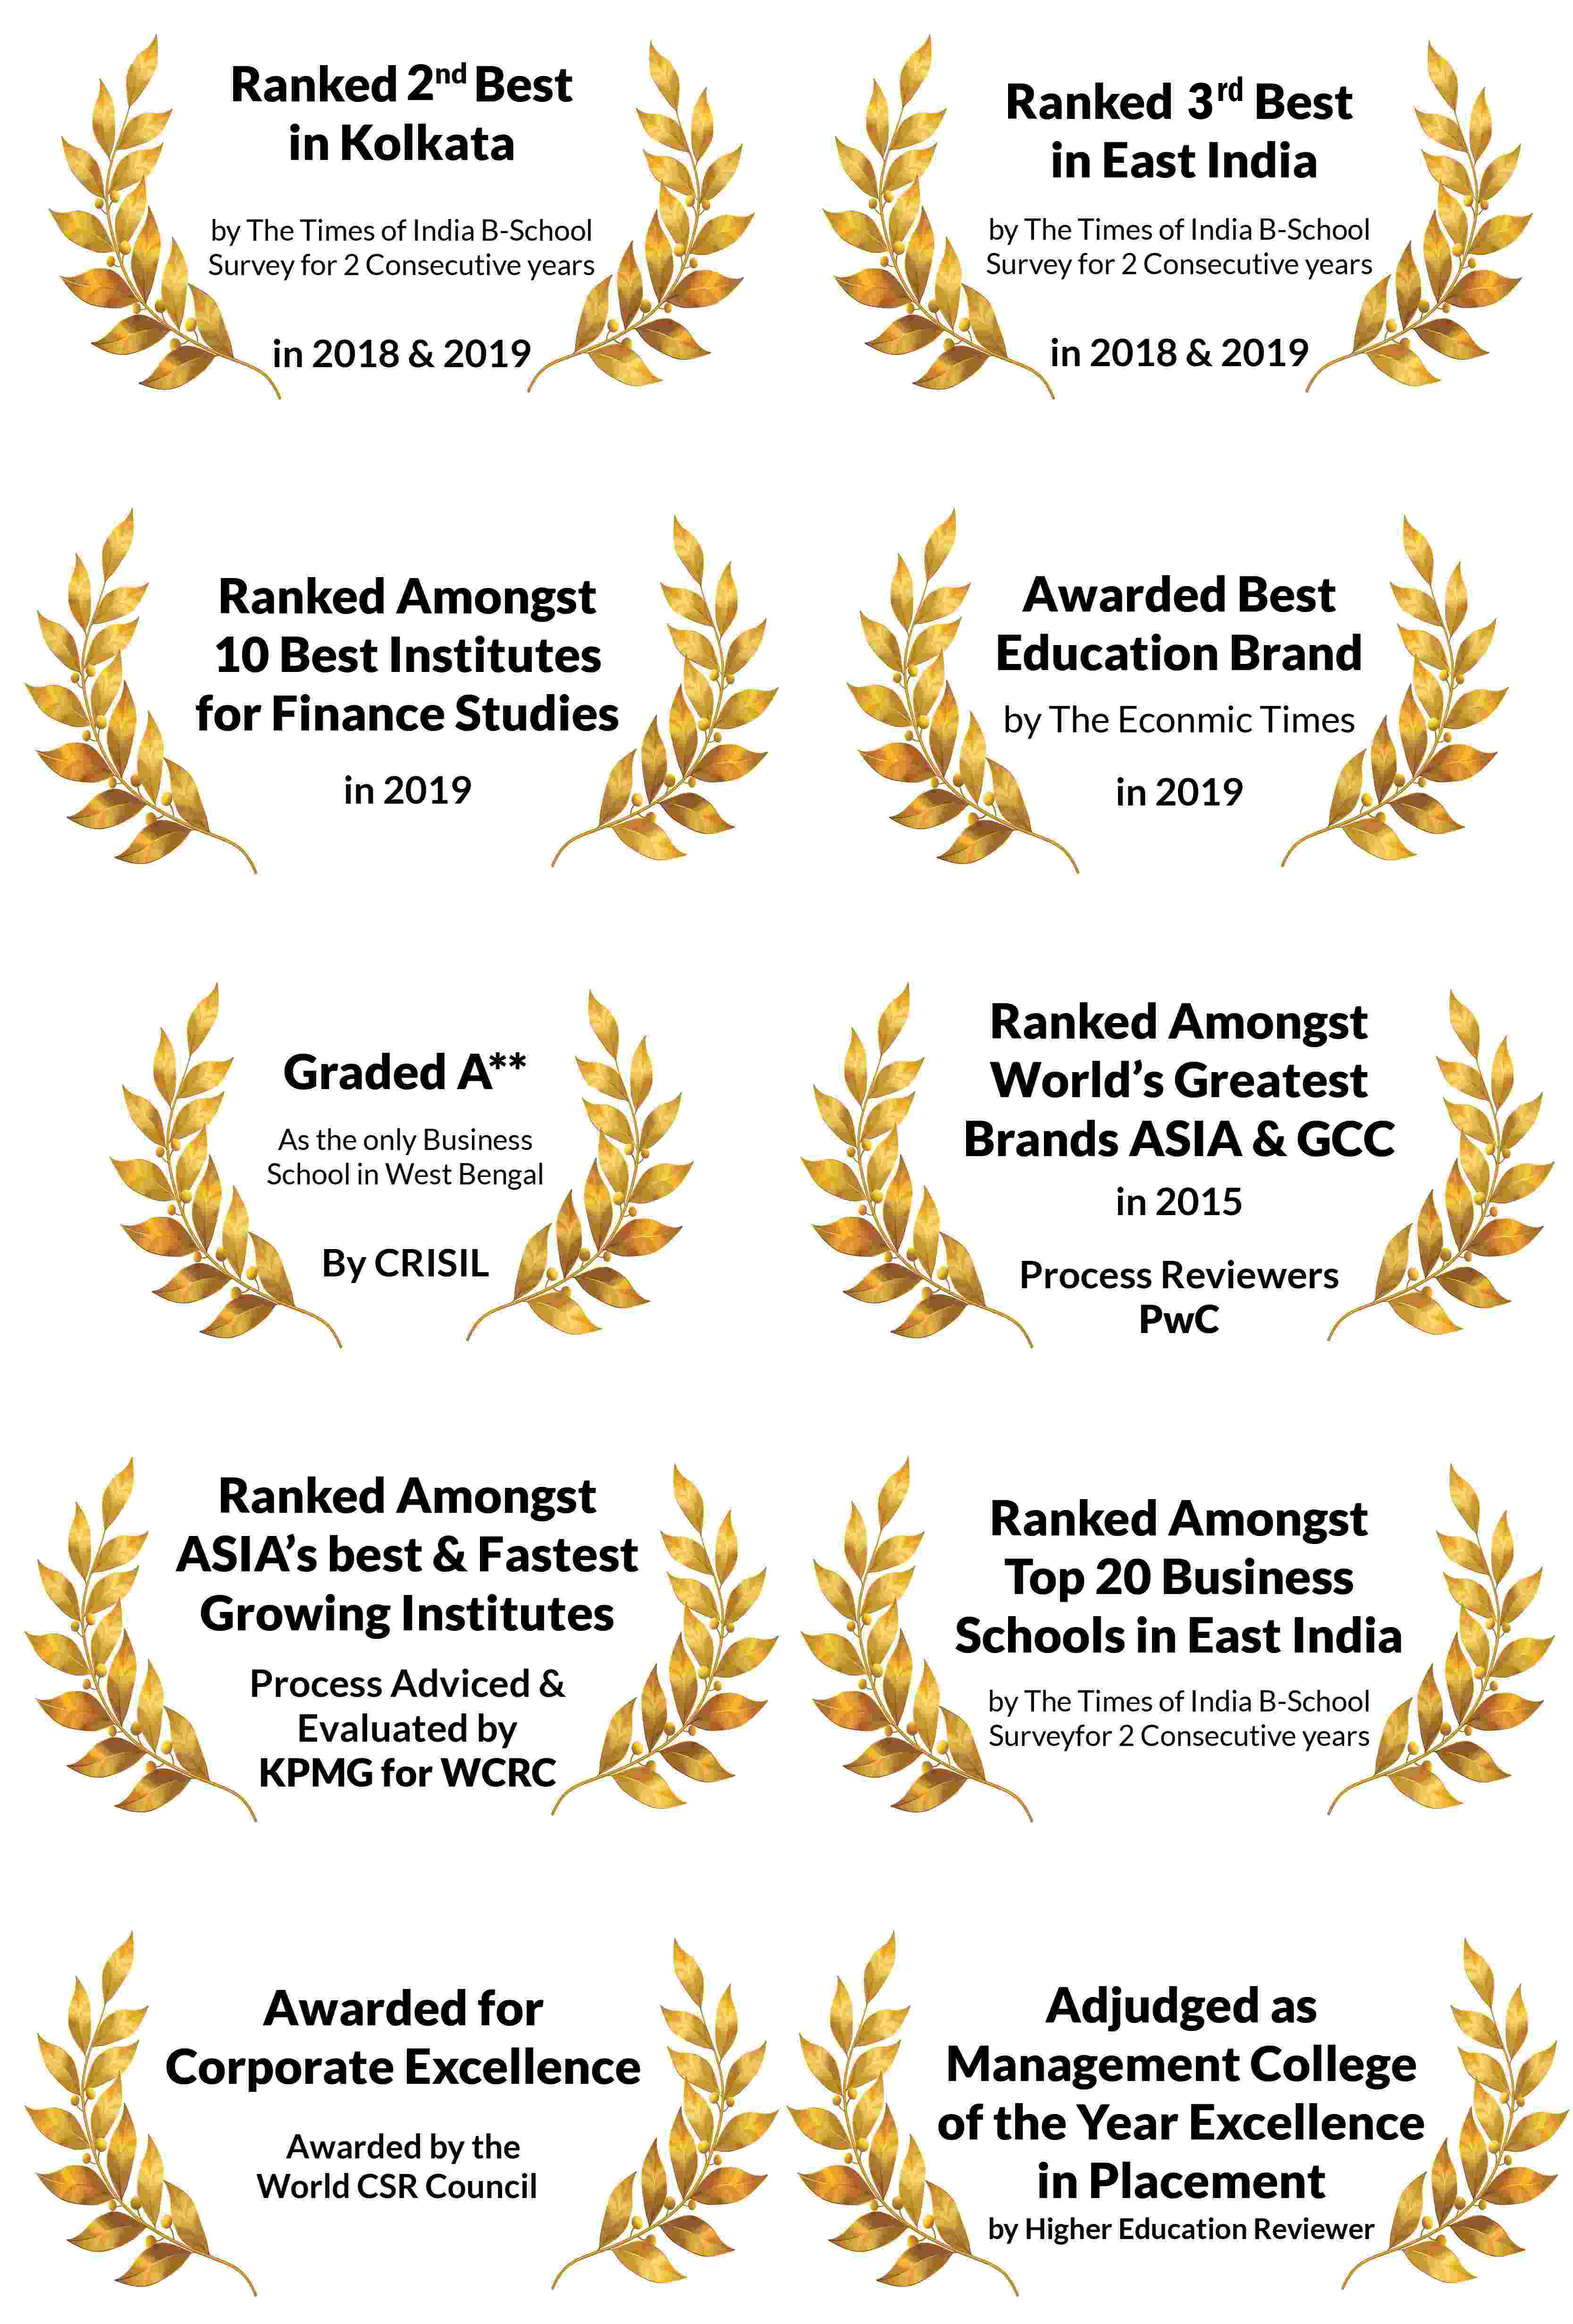 List of awards and recognitions received by BIBS